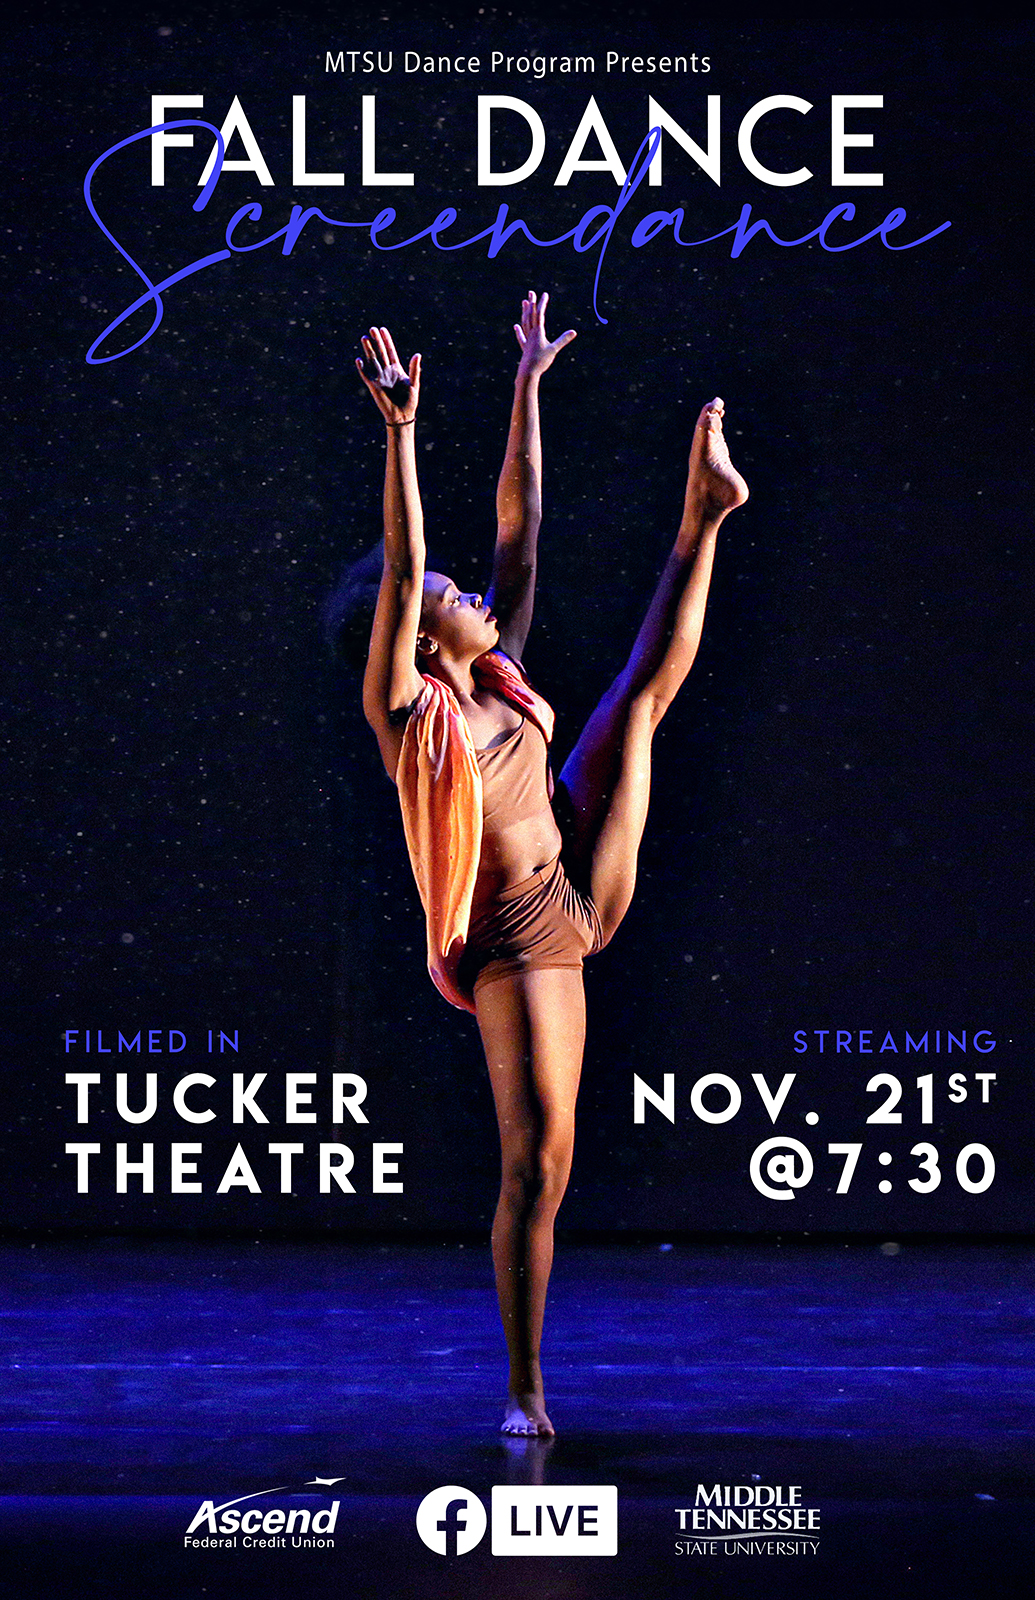 MTSU senior dance major Jordyn Hill of Knoxville, Tennessee, reaches skyward on the Tucker Theatre stage during the 2019 Fall Dance Concert in this poster for the 2020 Fall Dance Concert. The MTSU Dance Theatre will present its 2020 Fall Dance Concert Saturday, Nov. 21, via video at the program's Facebook page: https://www.facebook.com/mtsu.dance. (Photo by Martin O'Connor)